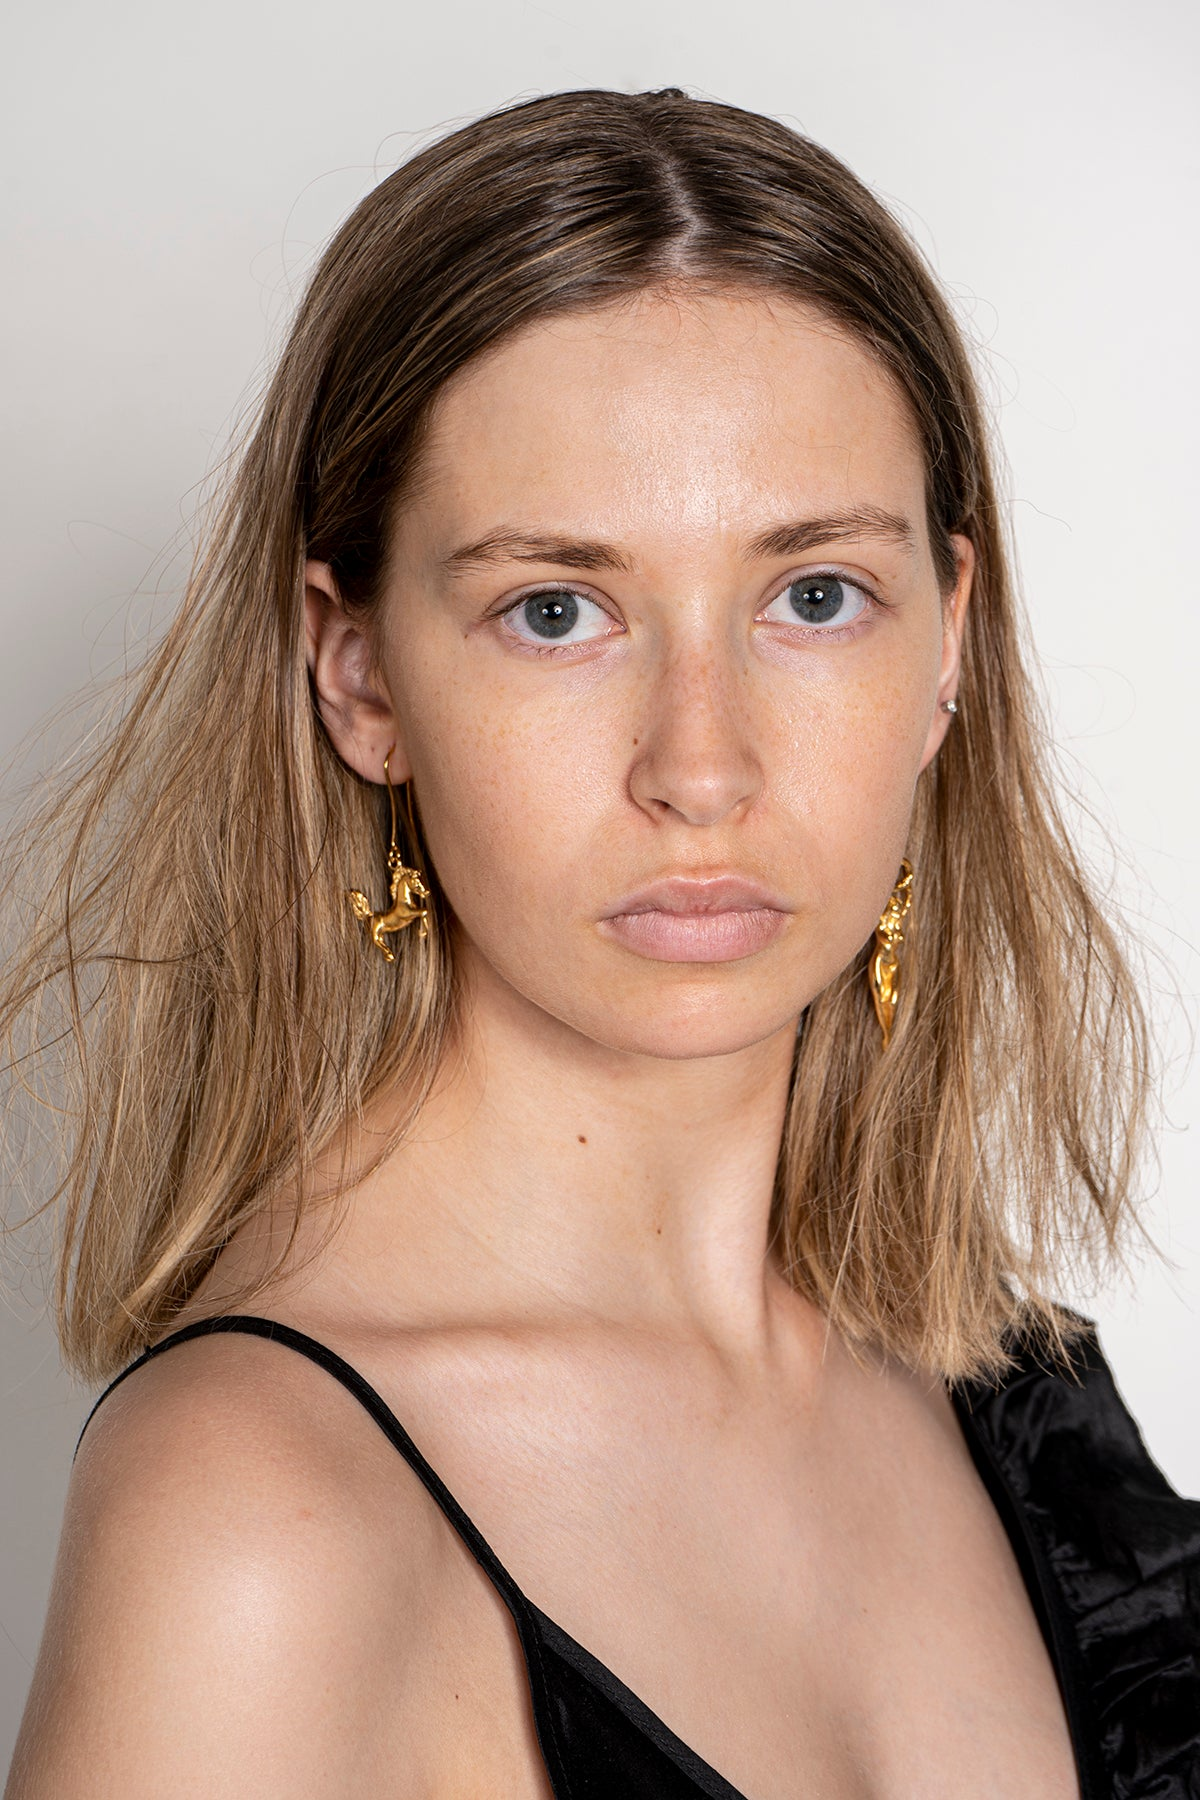 GOLD LADY AND HORSE EARRINGS